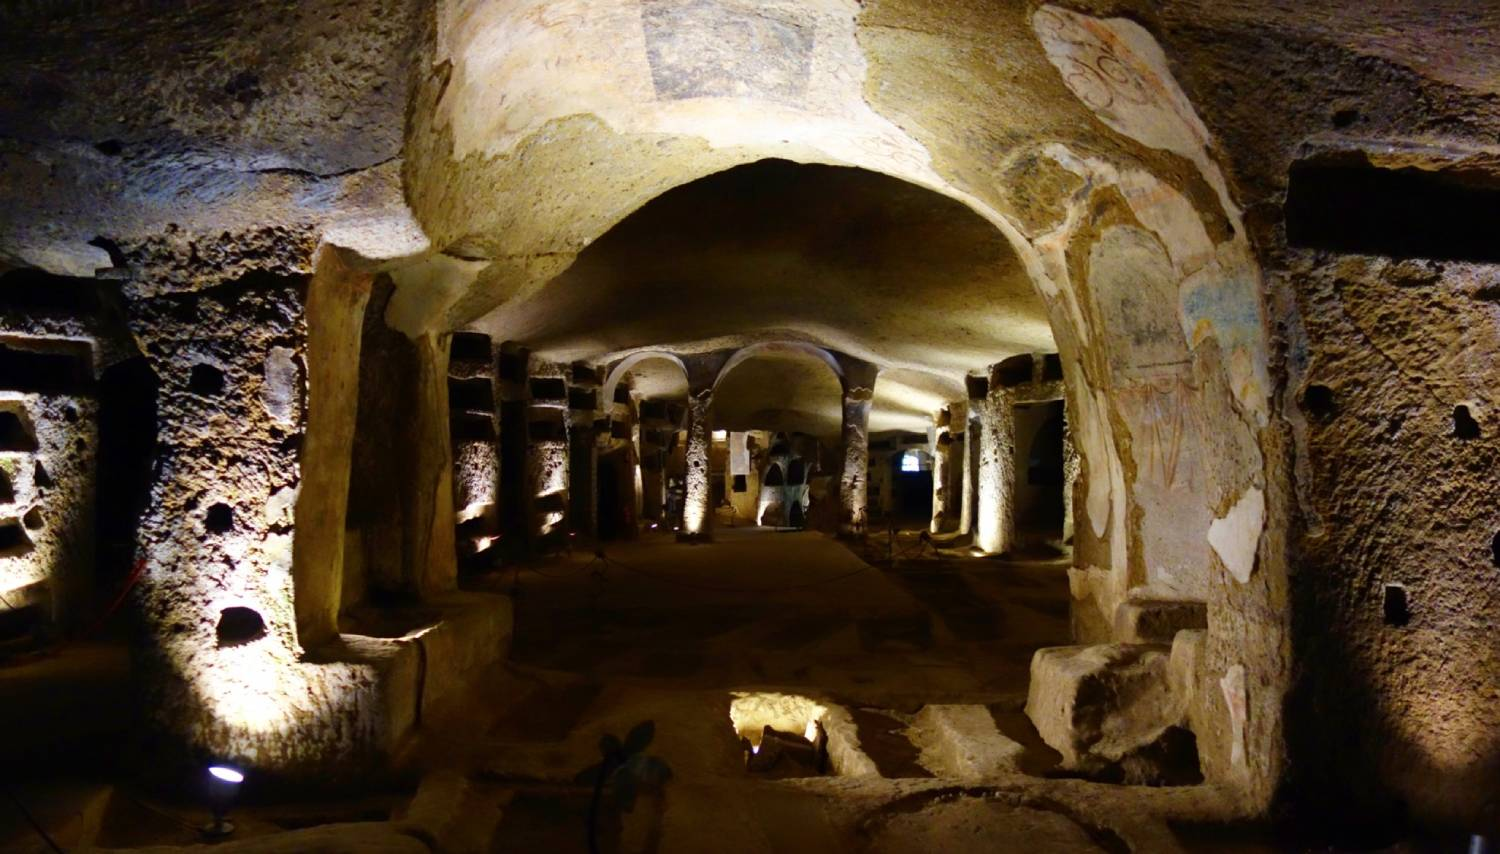 The Catacombs of San Gennaro - Things To Do In Naples